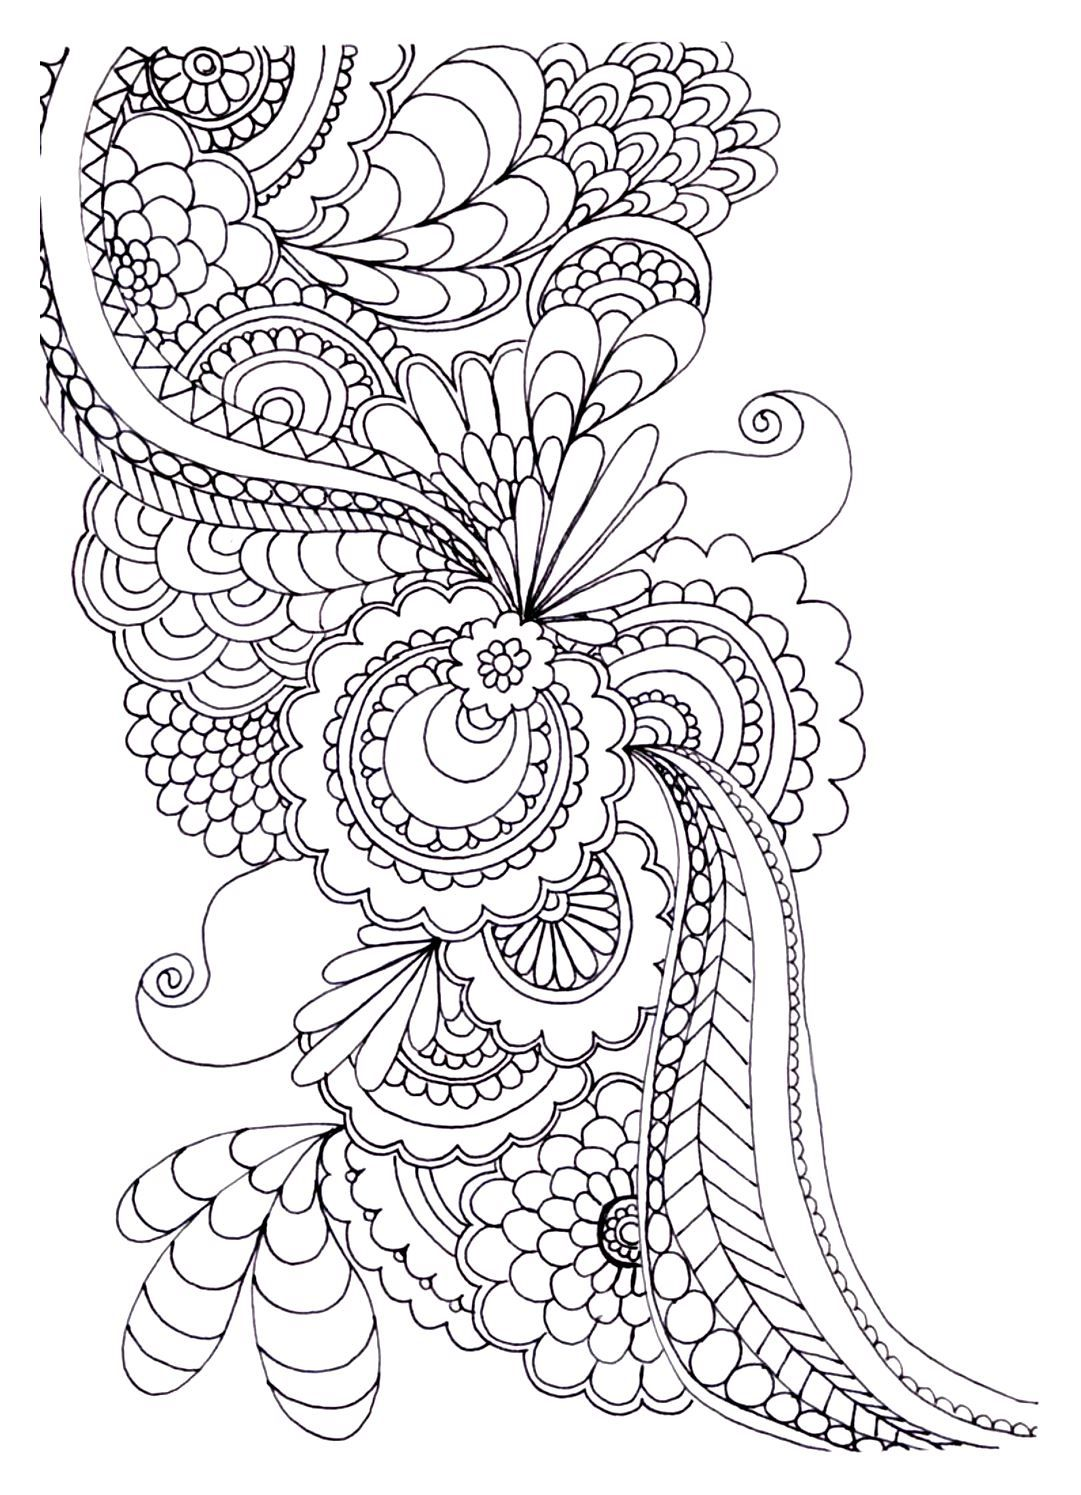 To Print This Free Coloring Page â«coloring-adult-zen-anti